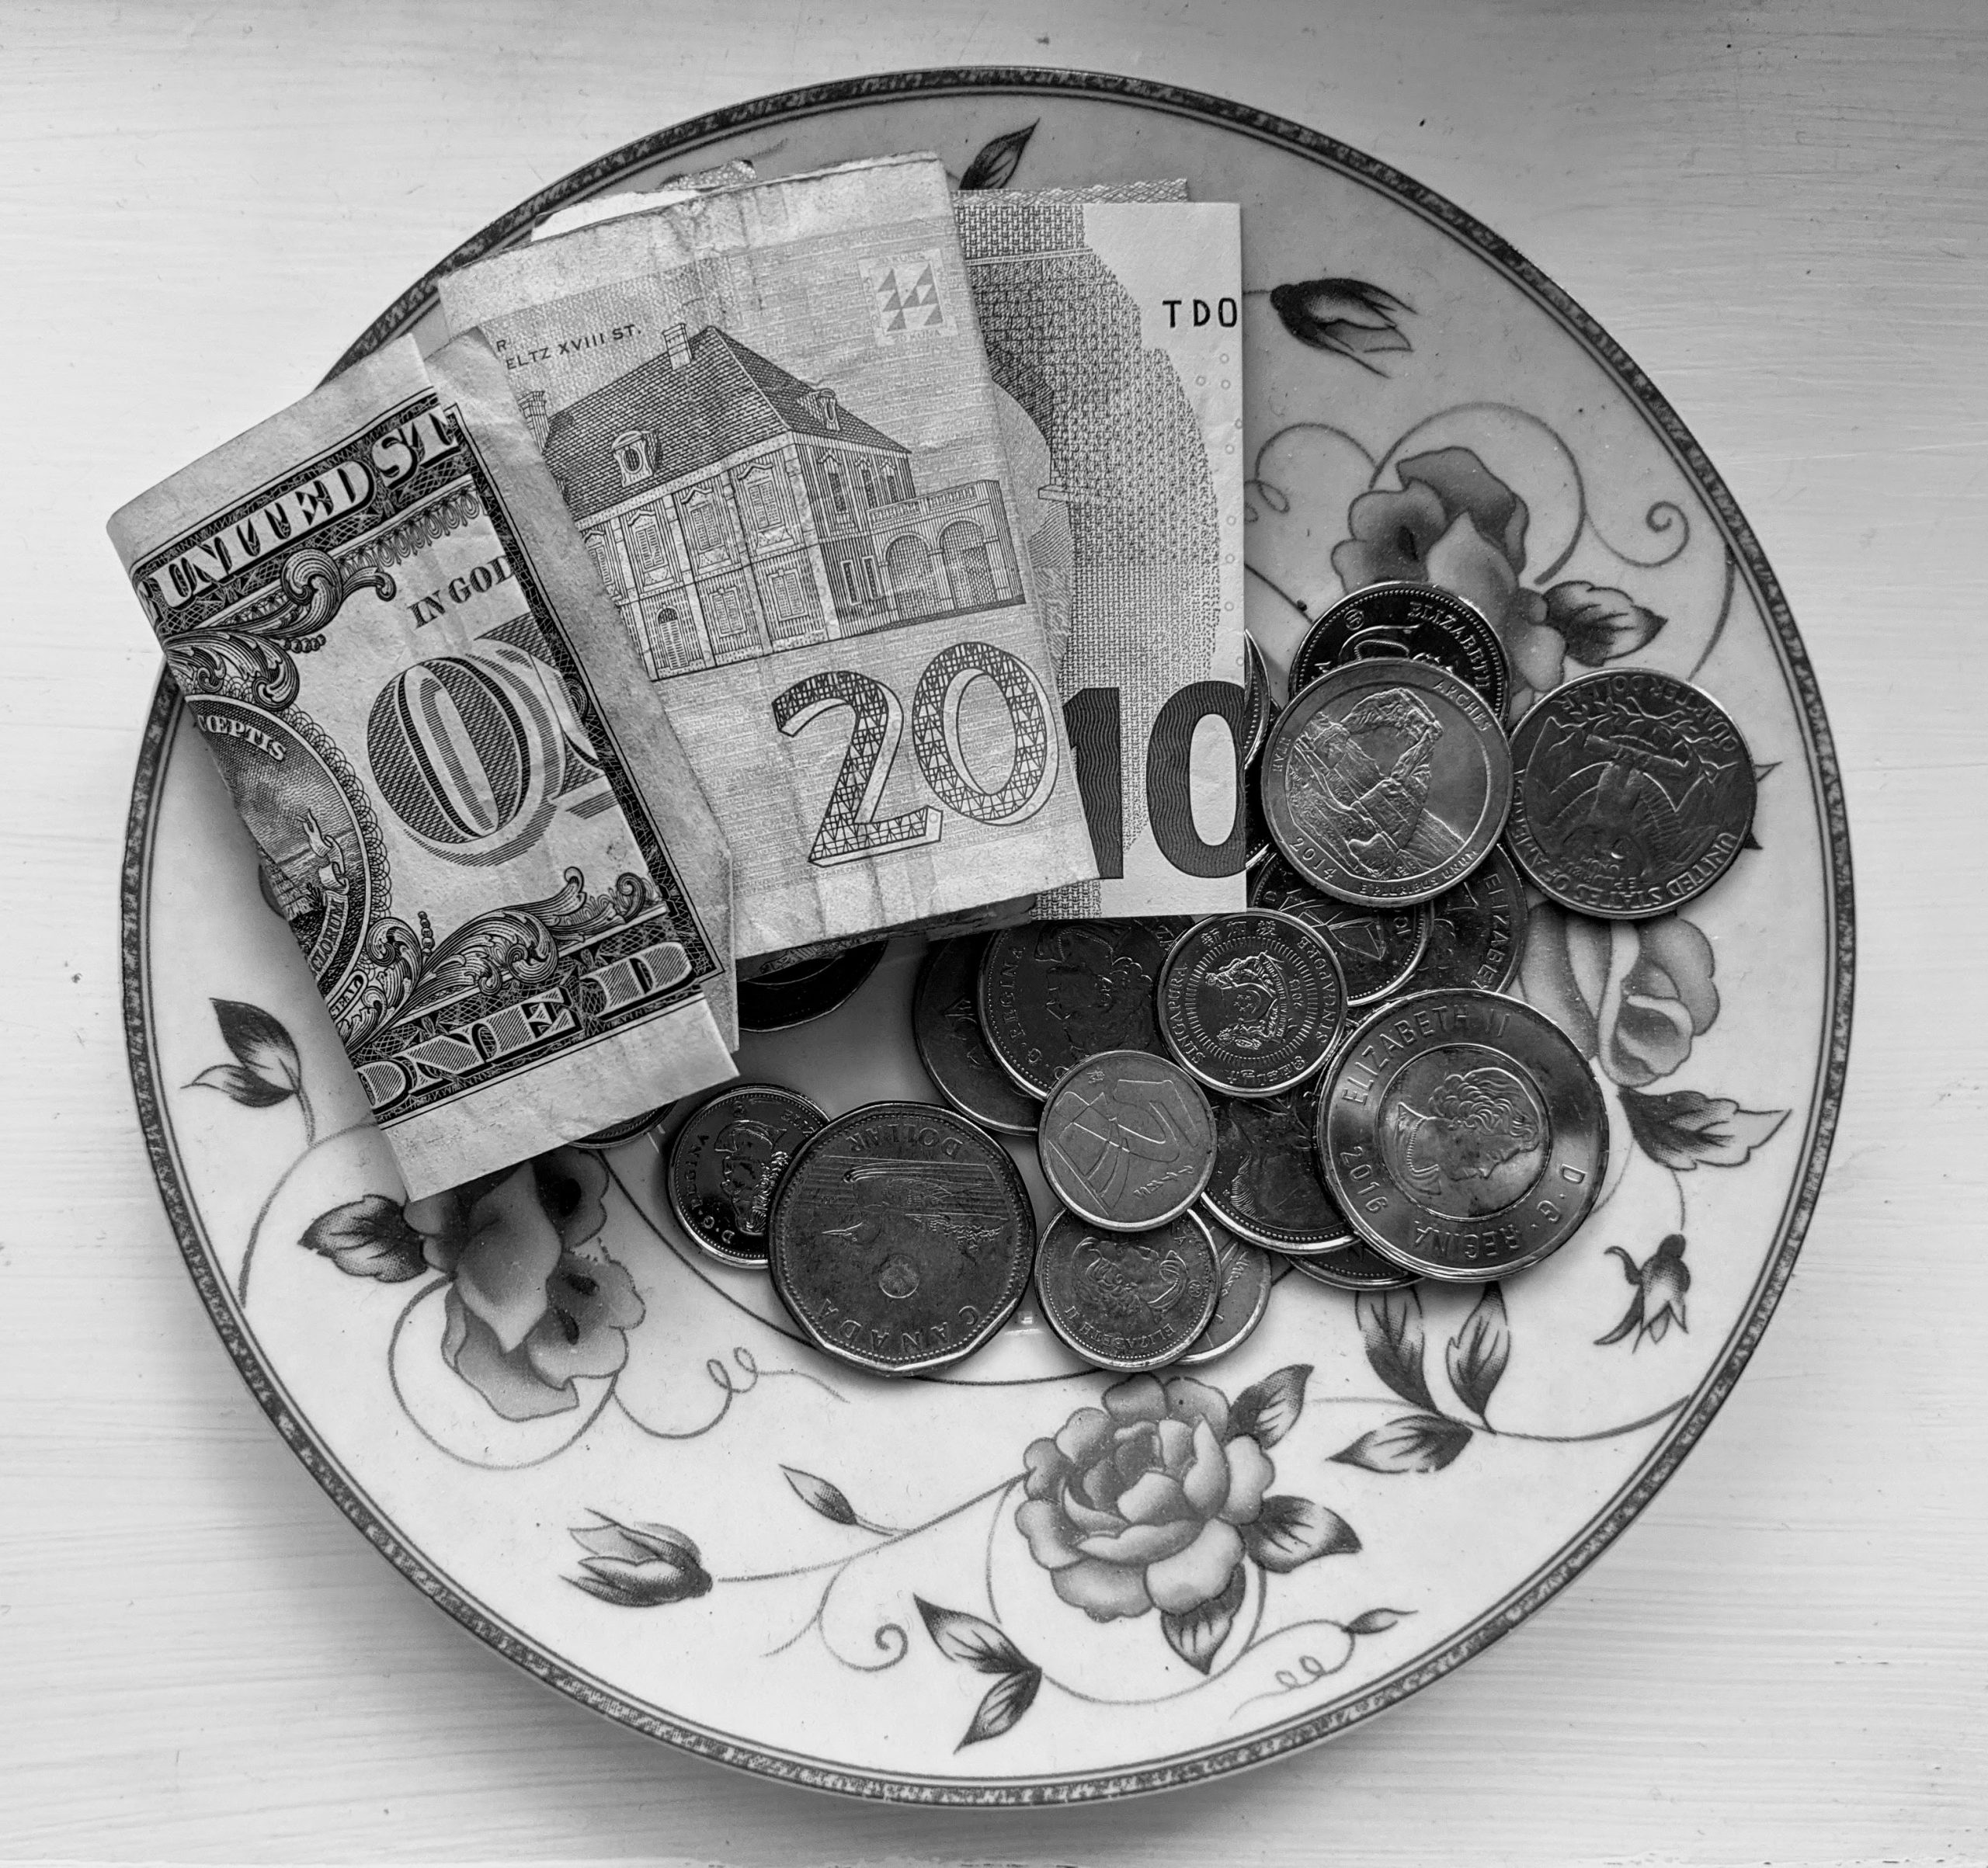 Various currencies on a plate